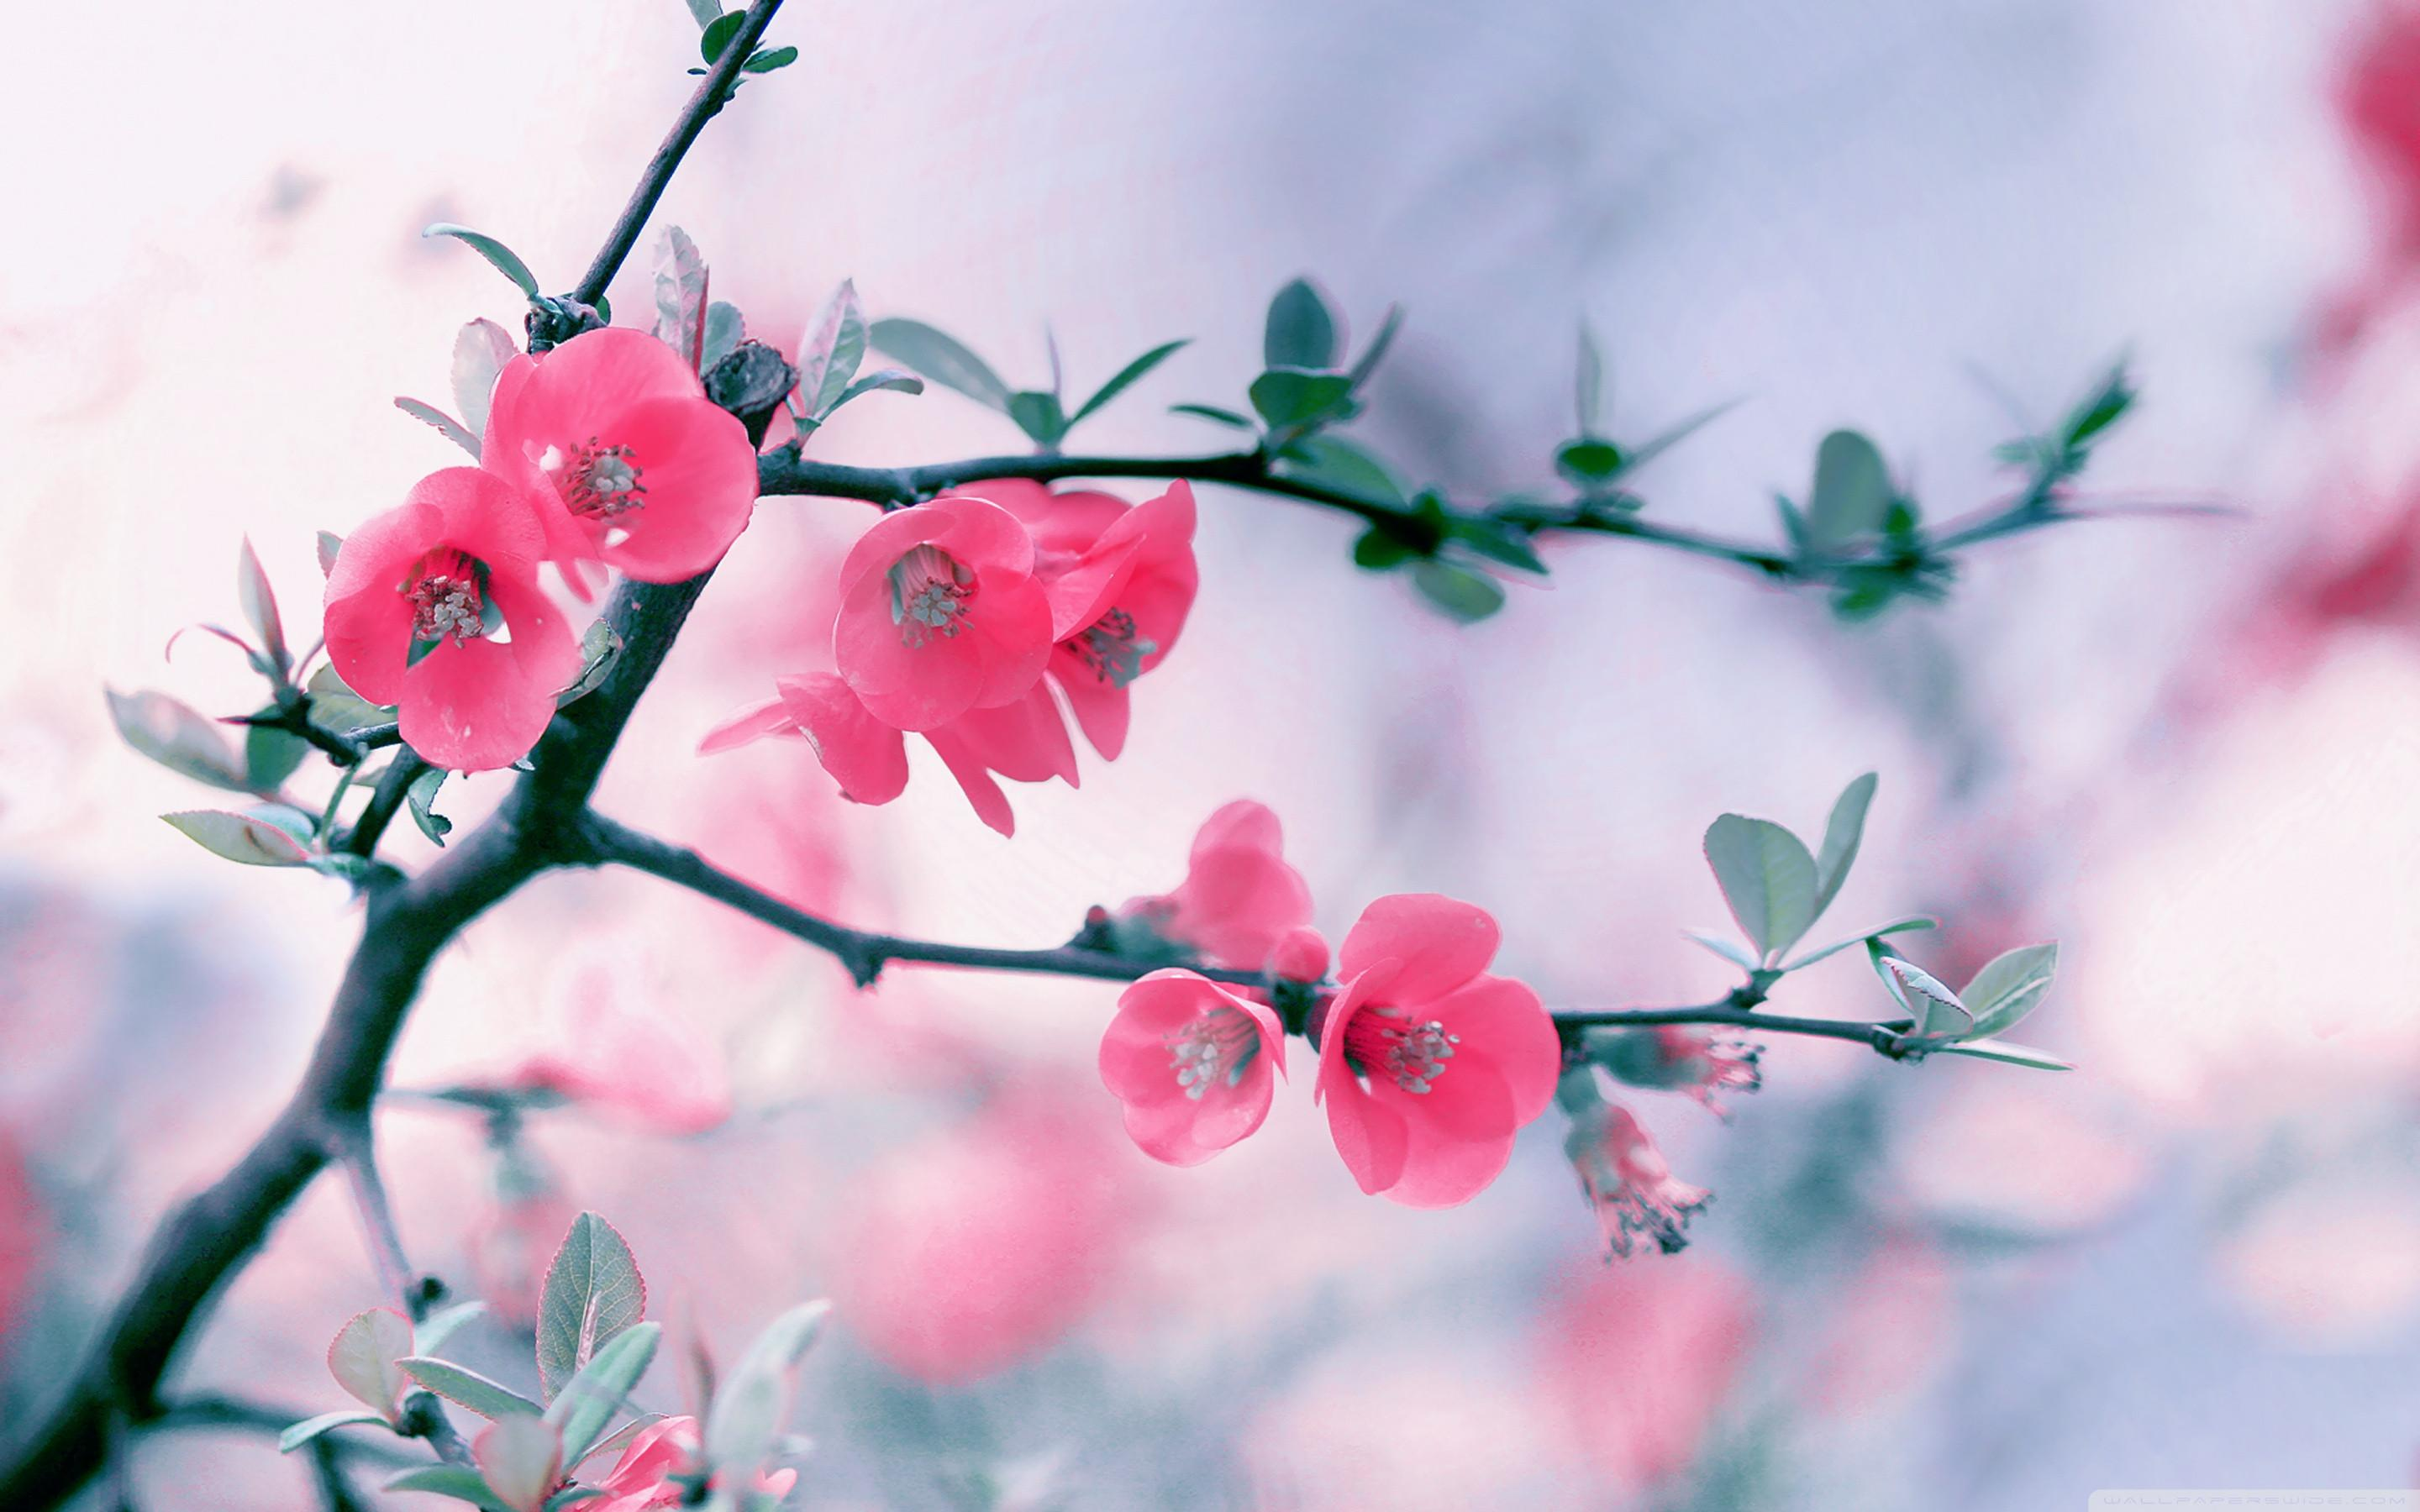 Wallpaper spring flowers desktop image pic wpb00462 wallpaper download mightylinksfo